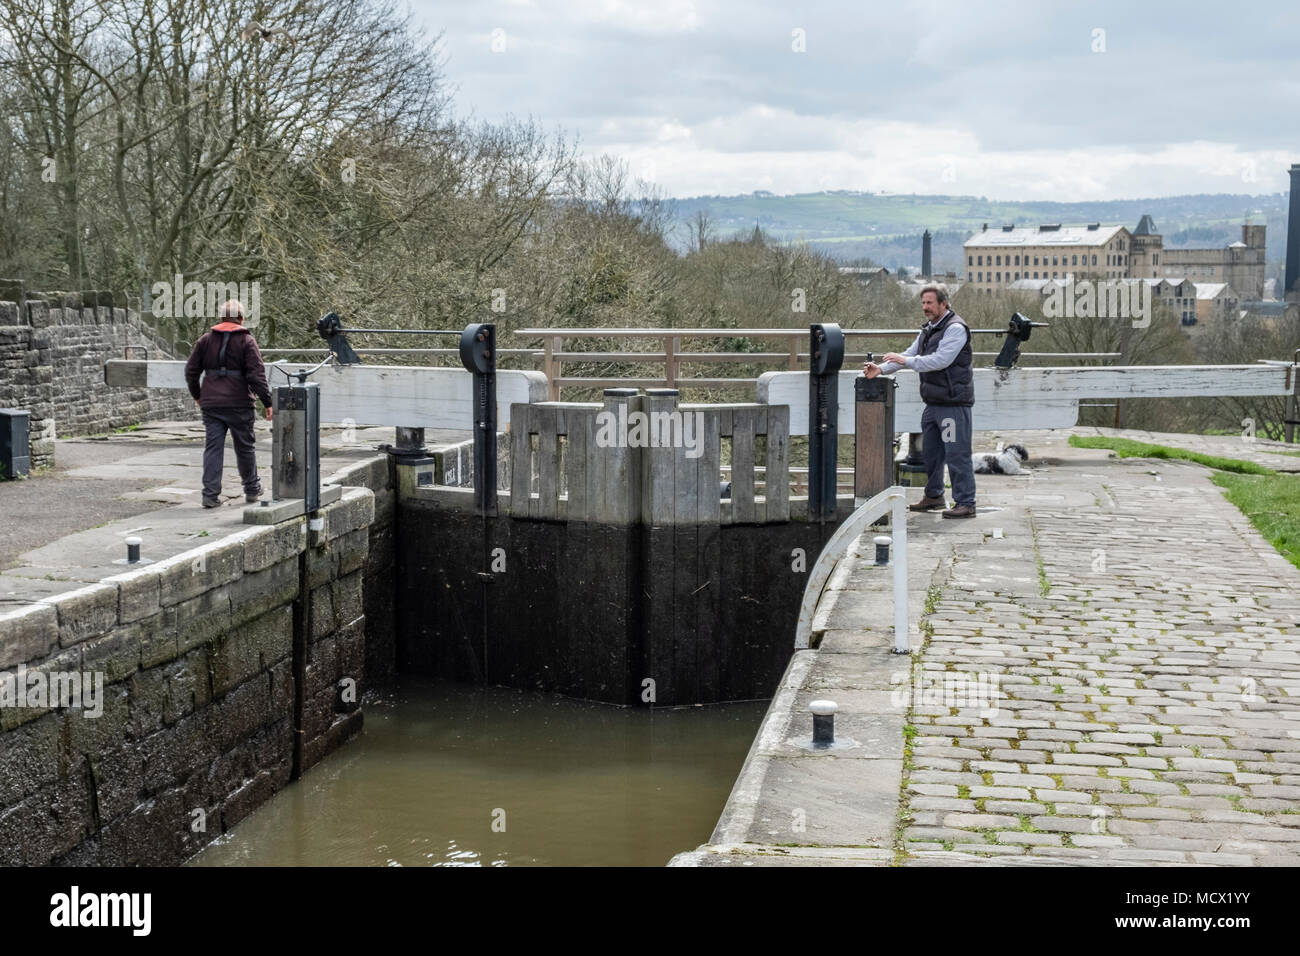 Lock Keepers on The Five Rise Locks on the Leeds and Liverpool Canal,  Bingley, near Bradford, West Yorkshire, England. - Stock Image